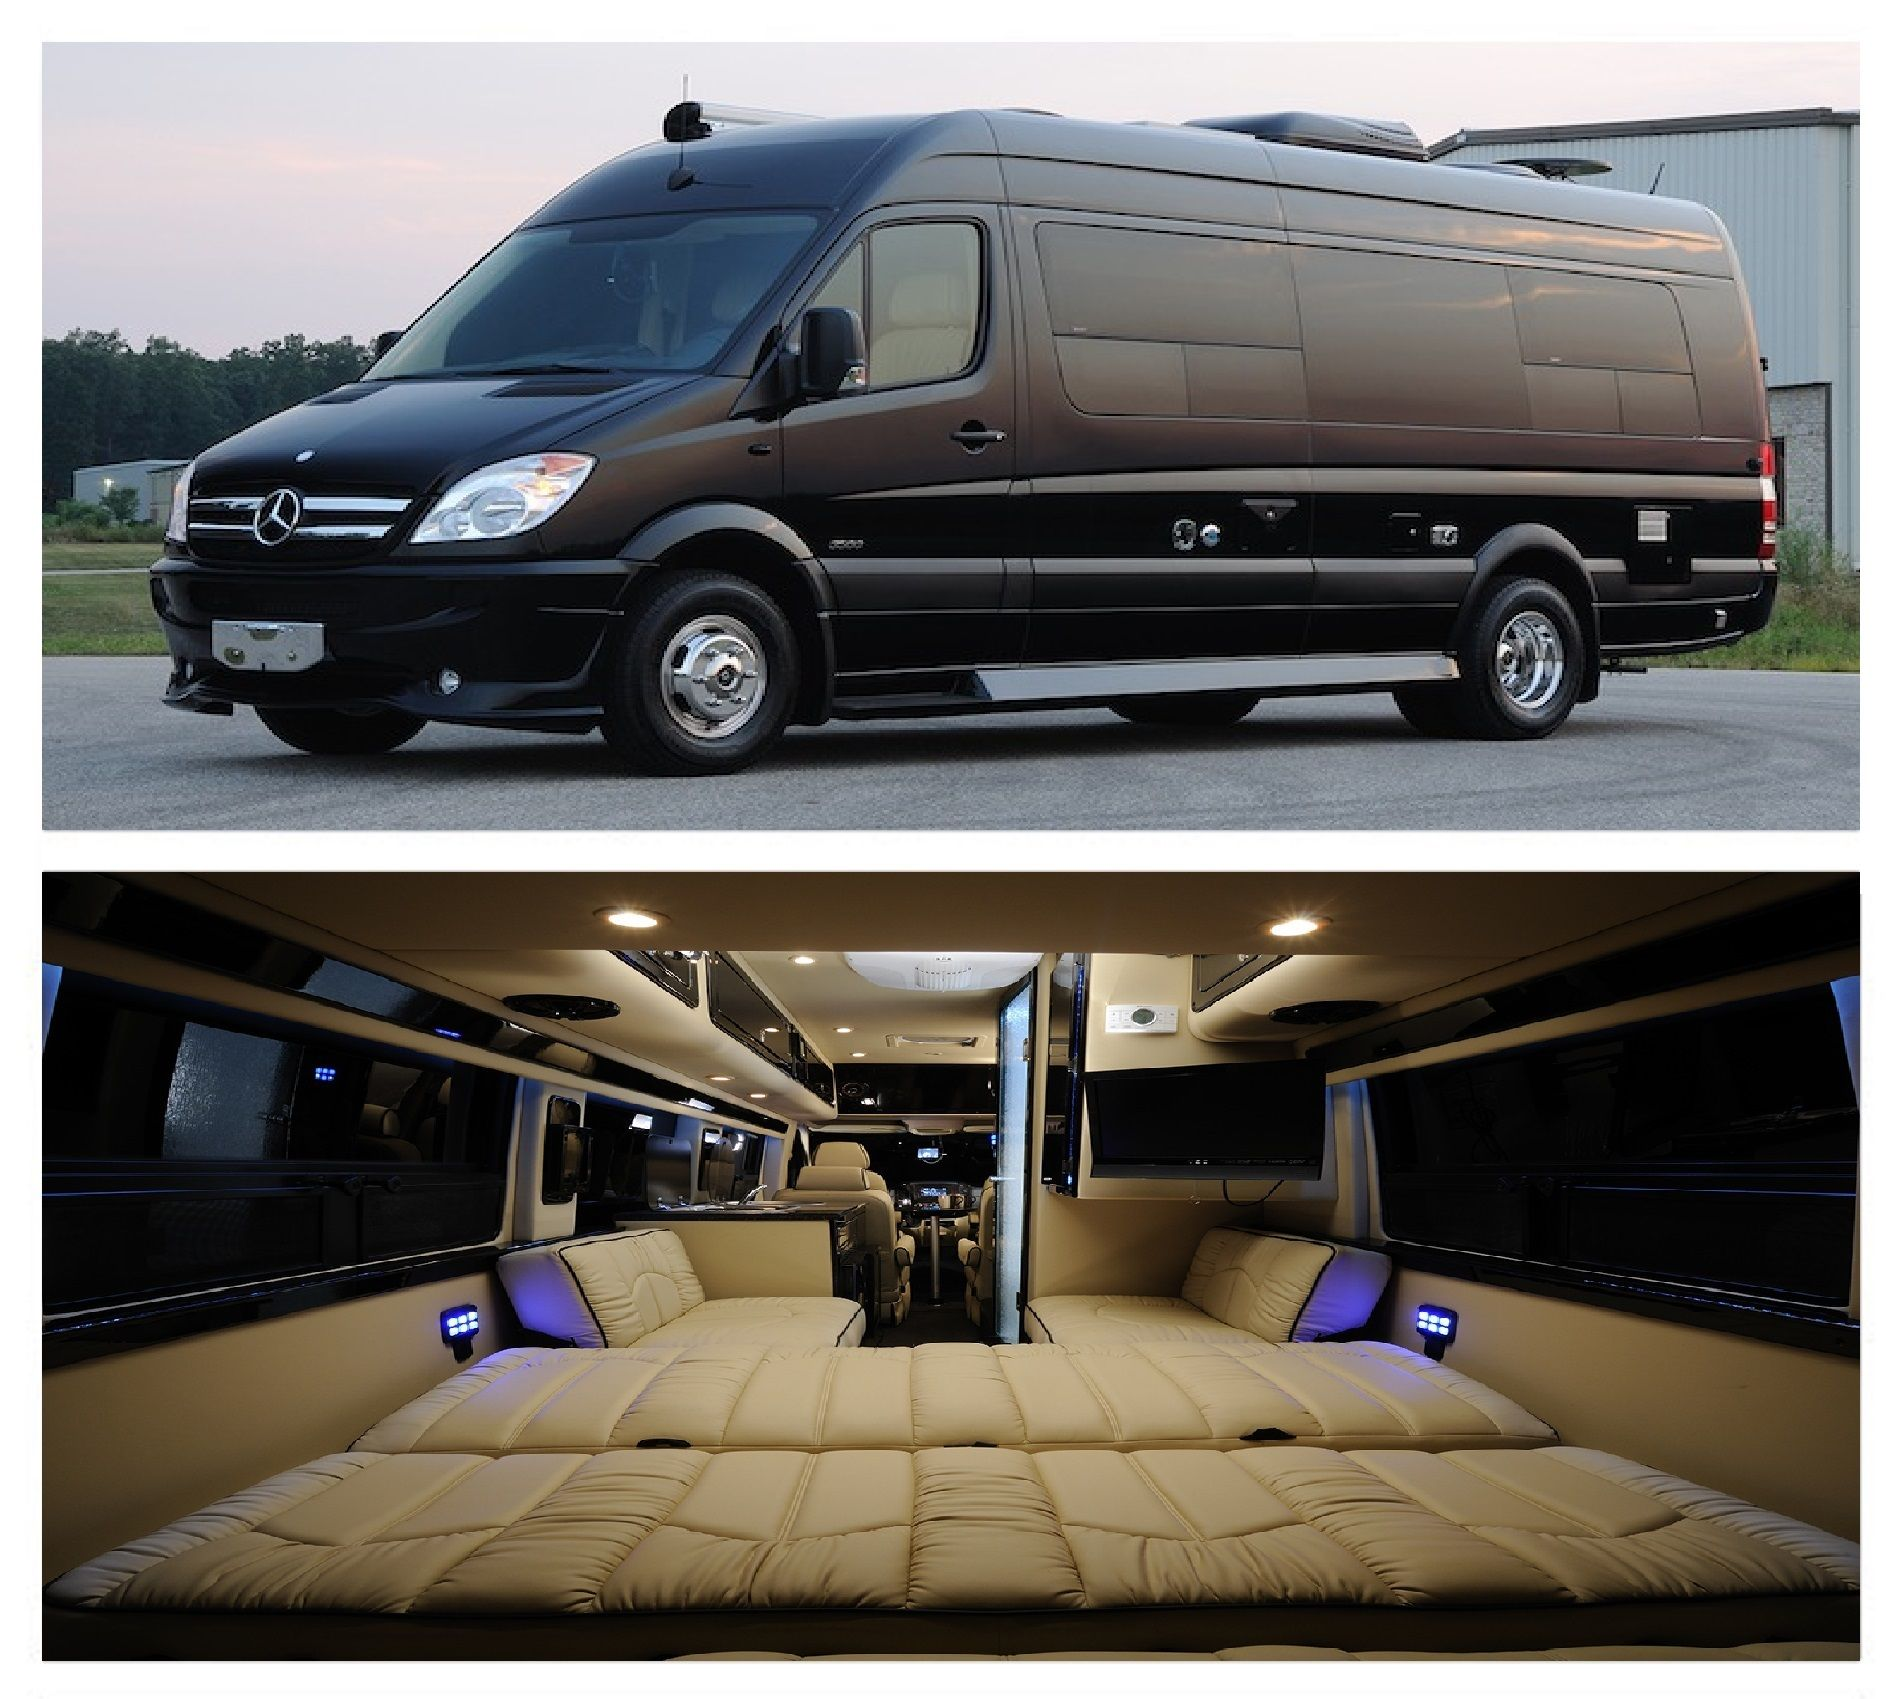 Weekender mercedes benz sprinter rv camper van http for Mercedes benz recreational vehicles